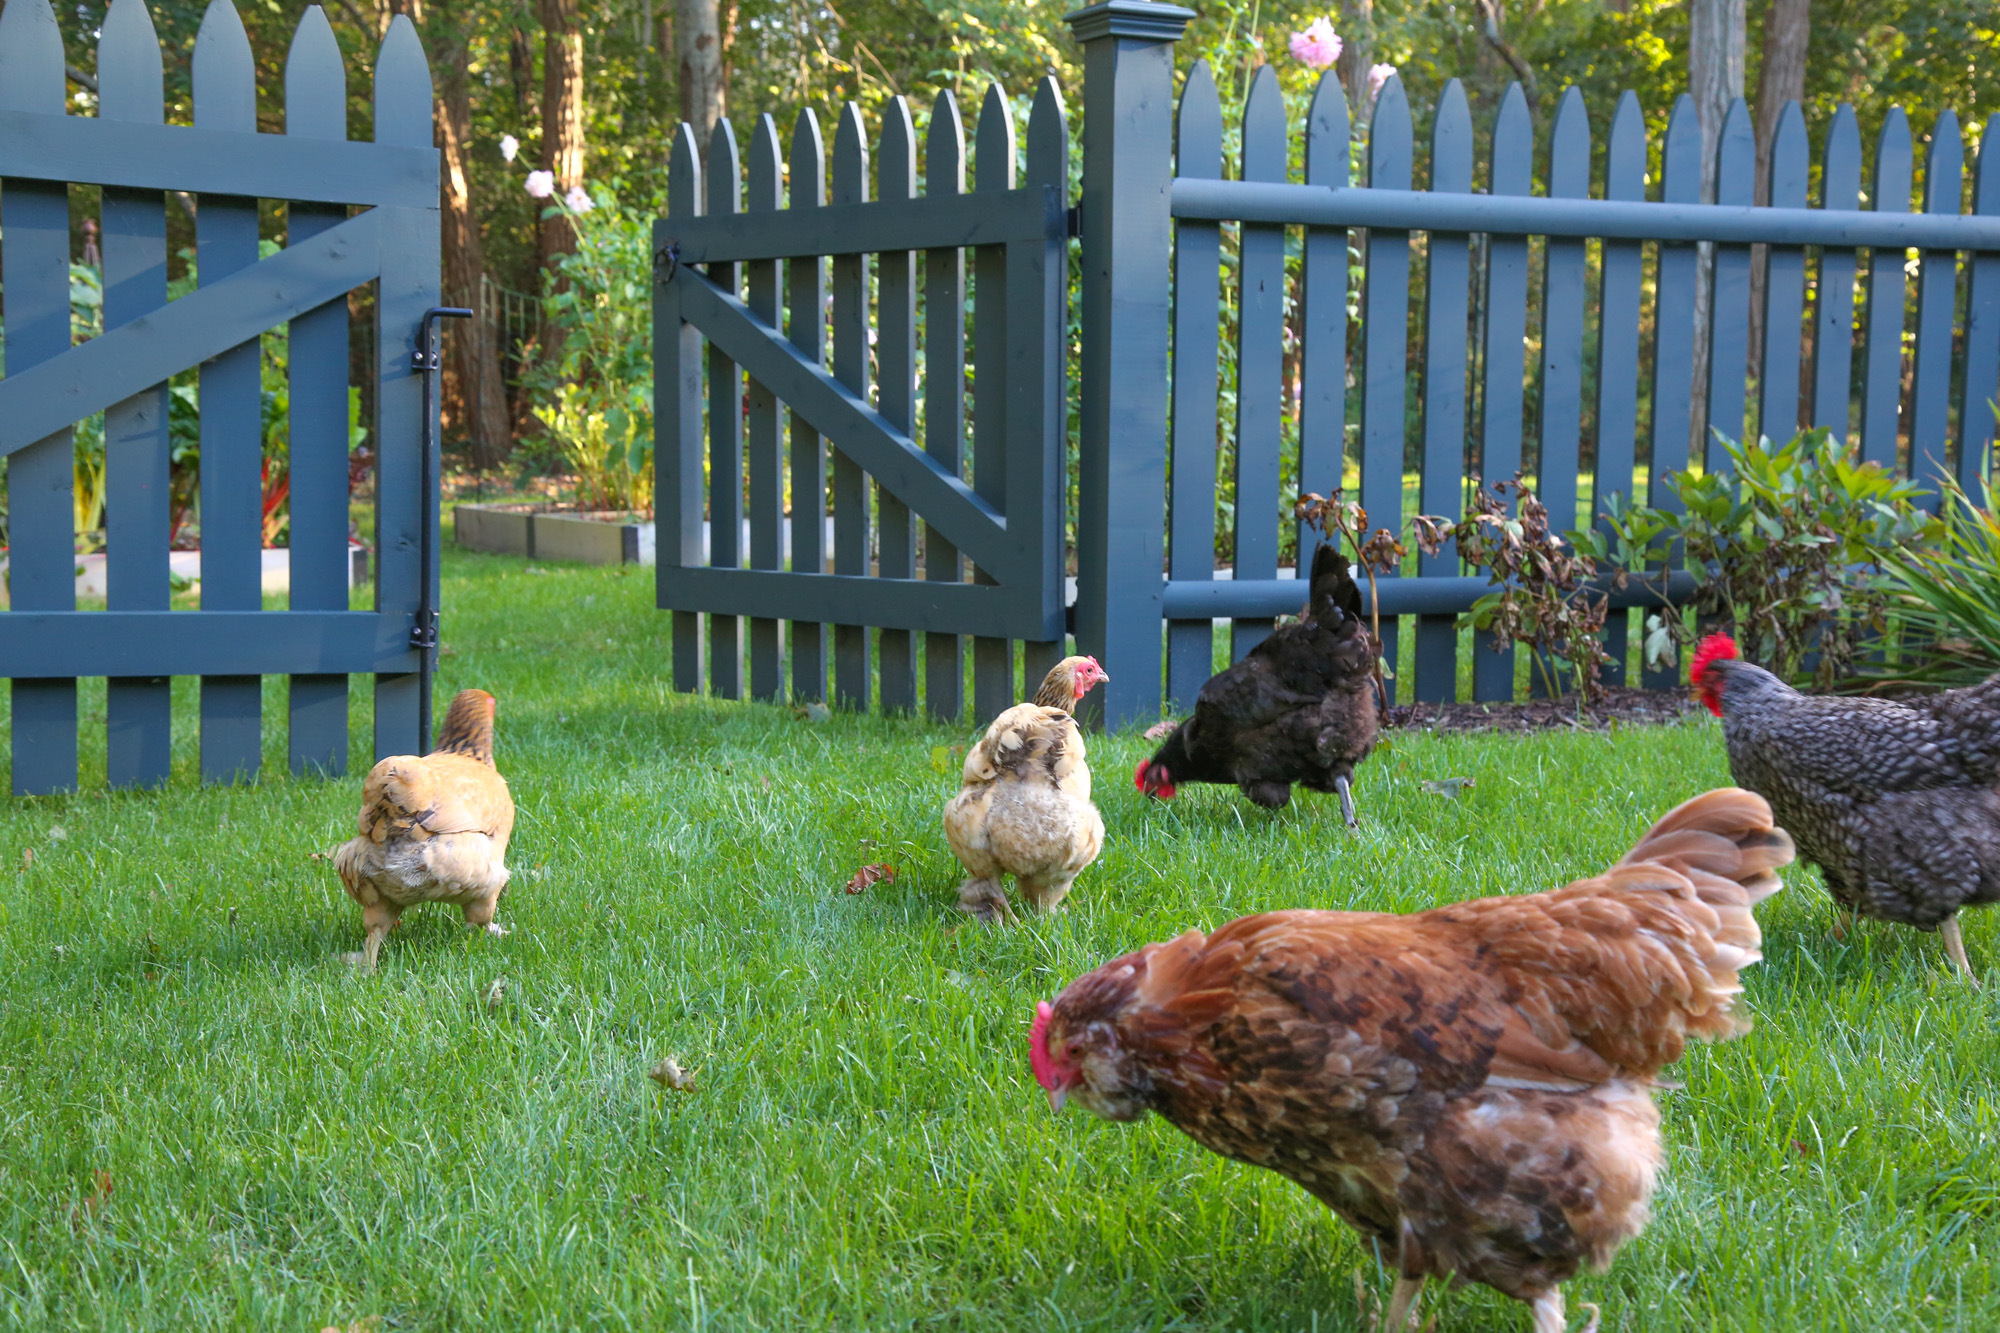 fencing helps to corral free ranging chickens